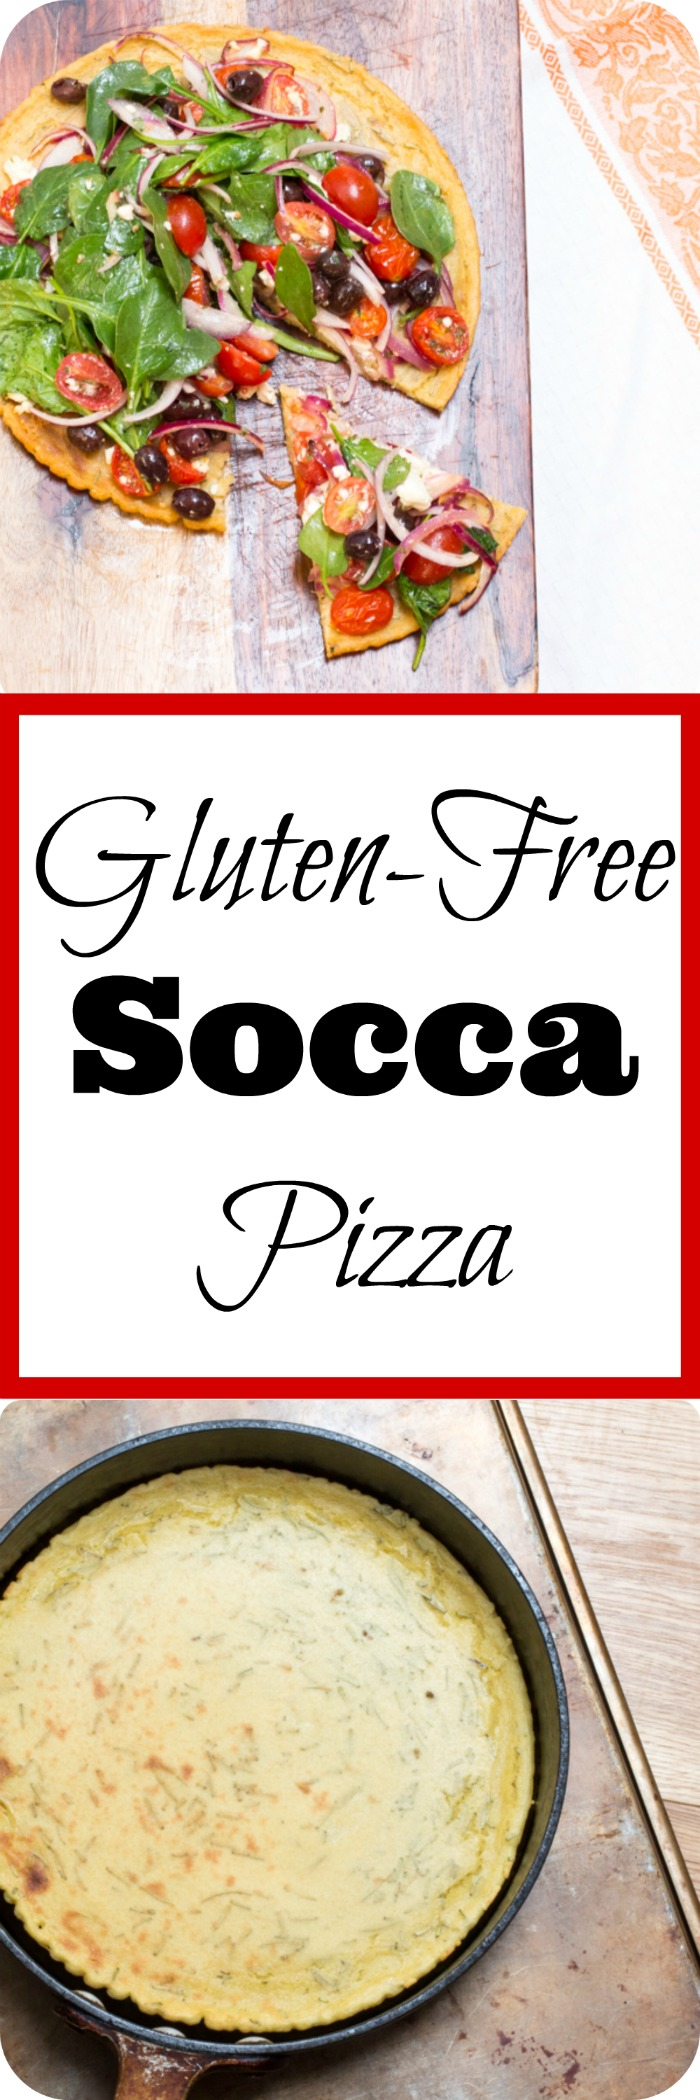 Gluten-free socca pizza made from chickpea flour, and topped with a Greek salad.